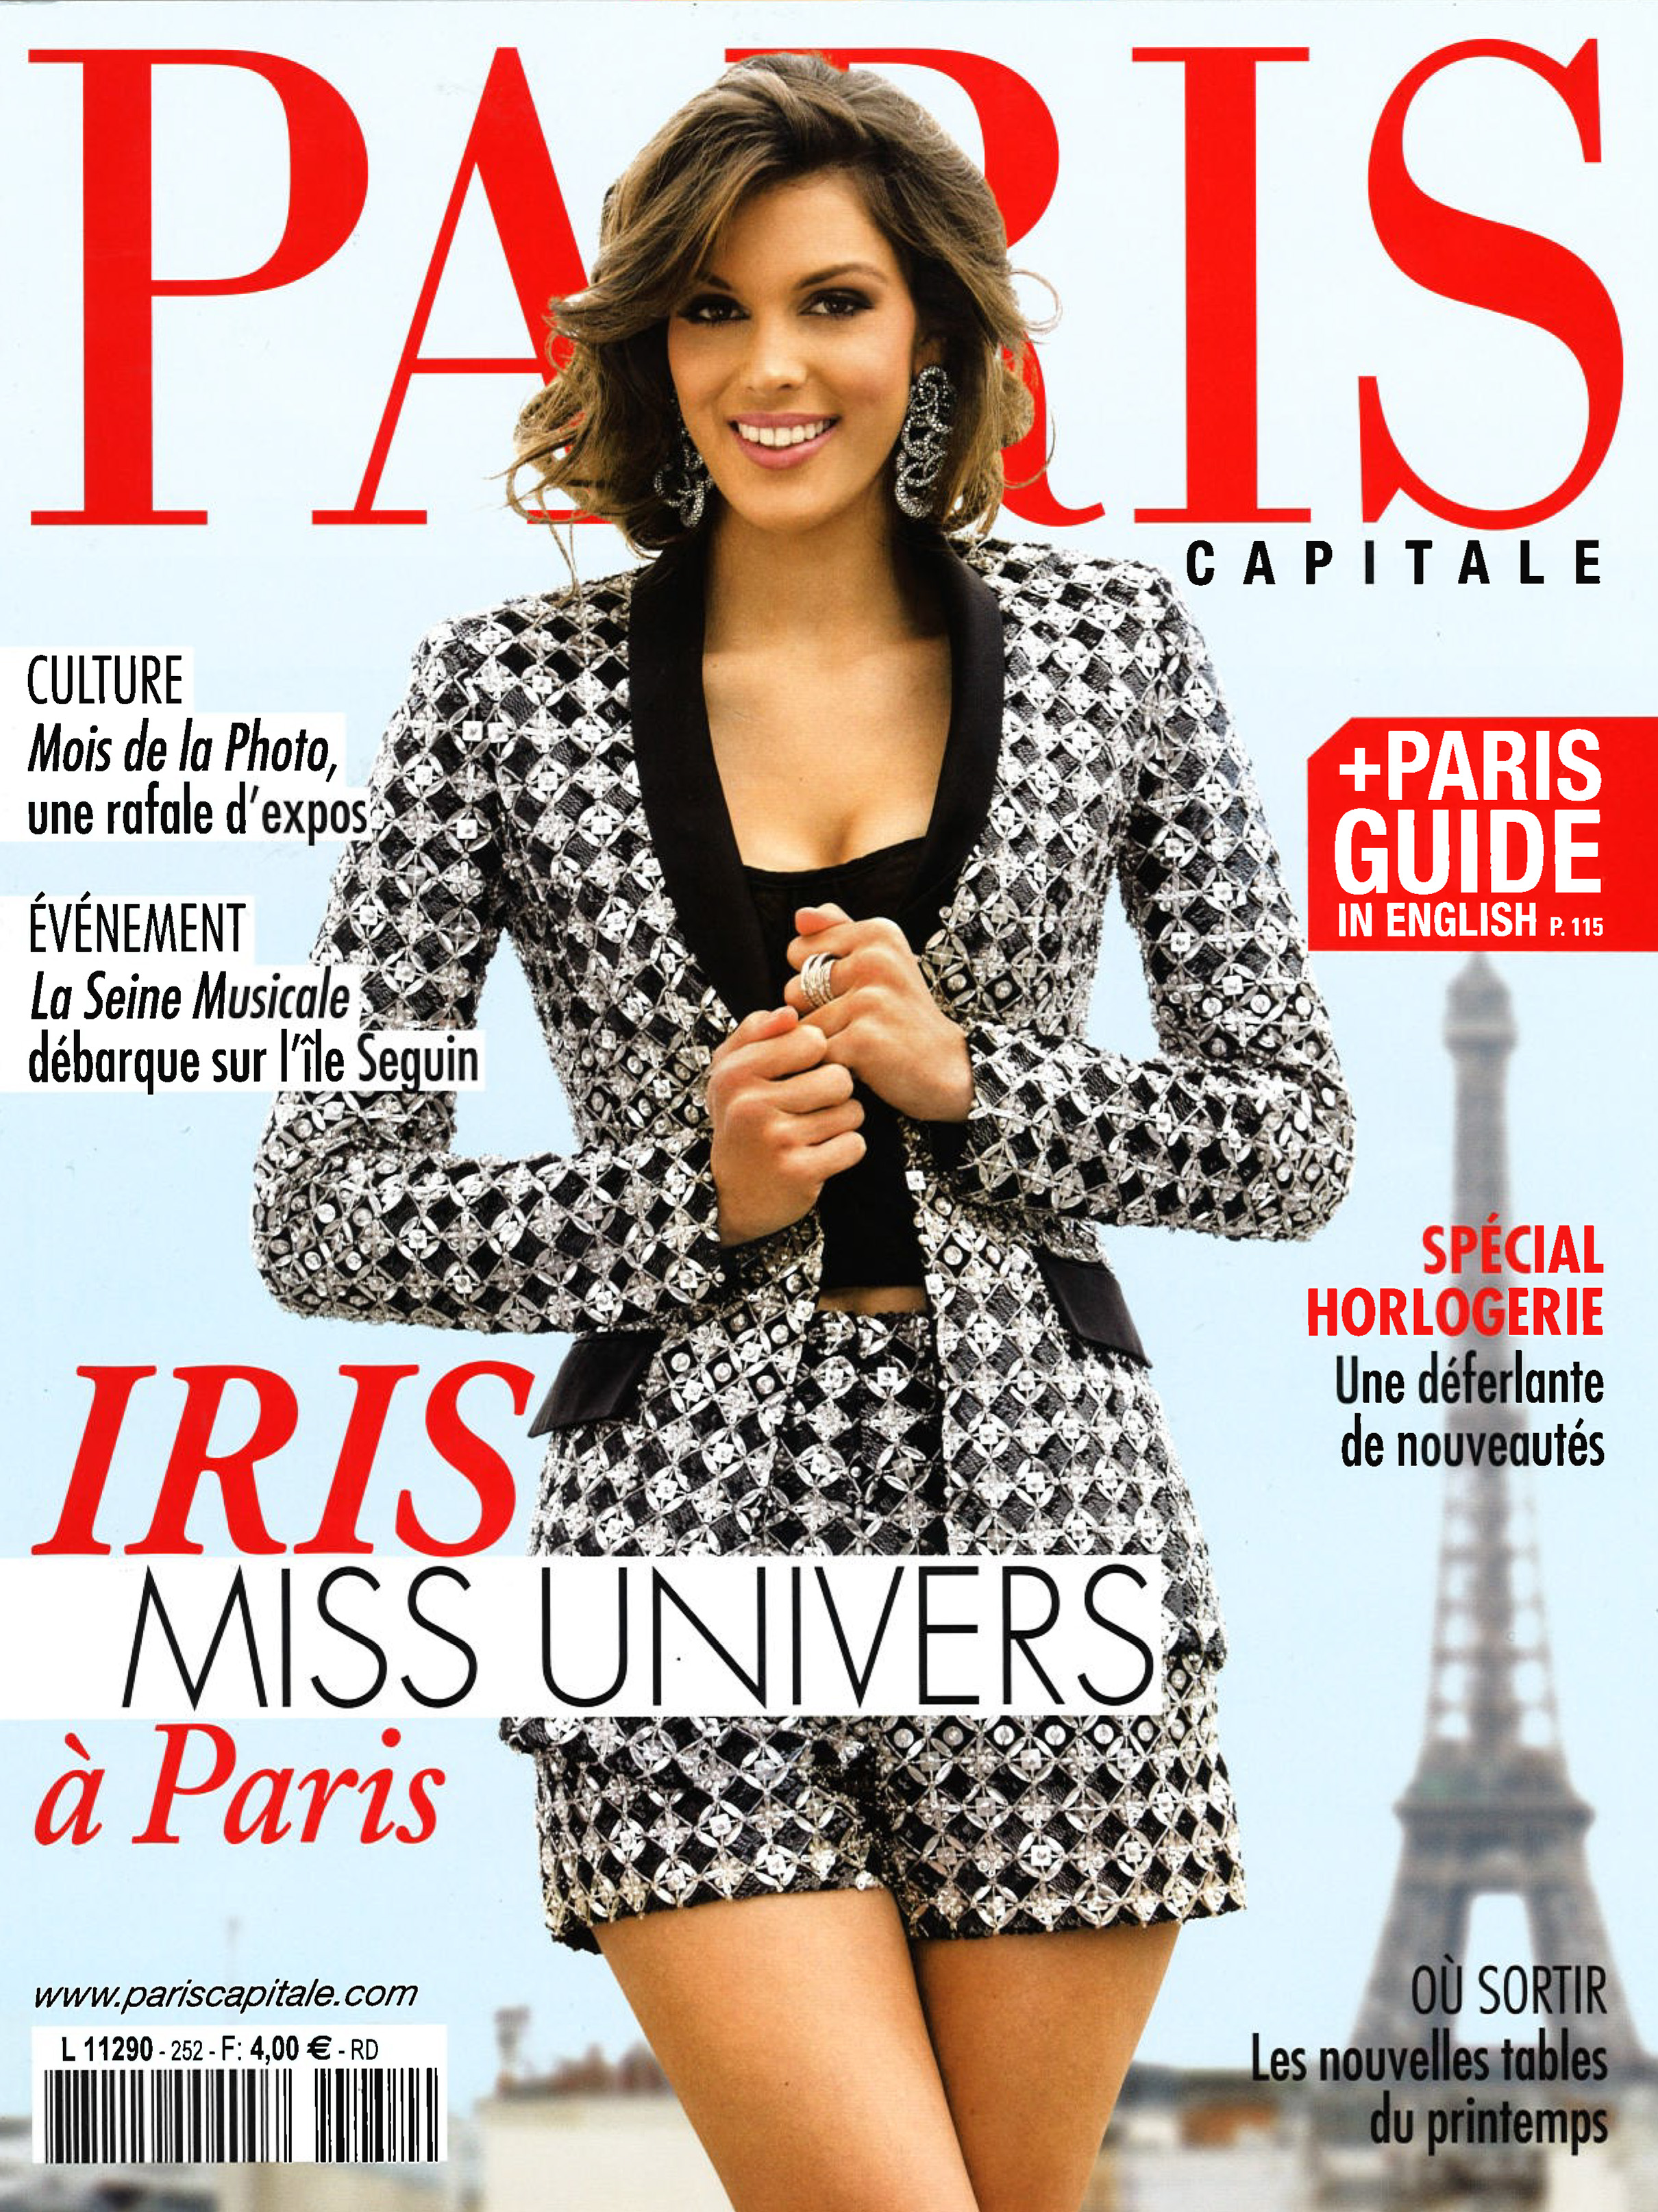 2017-04@PARISCAPITALE_FRANCE_COVER.JPG